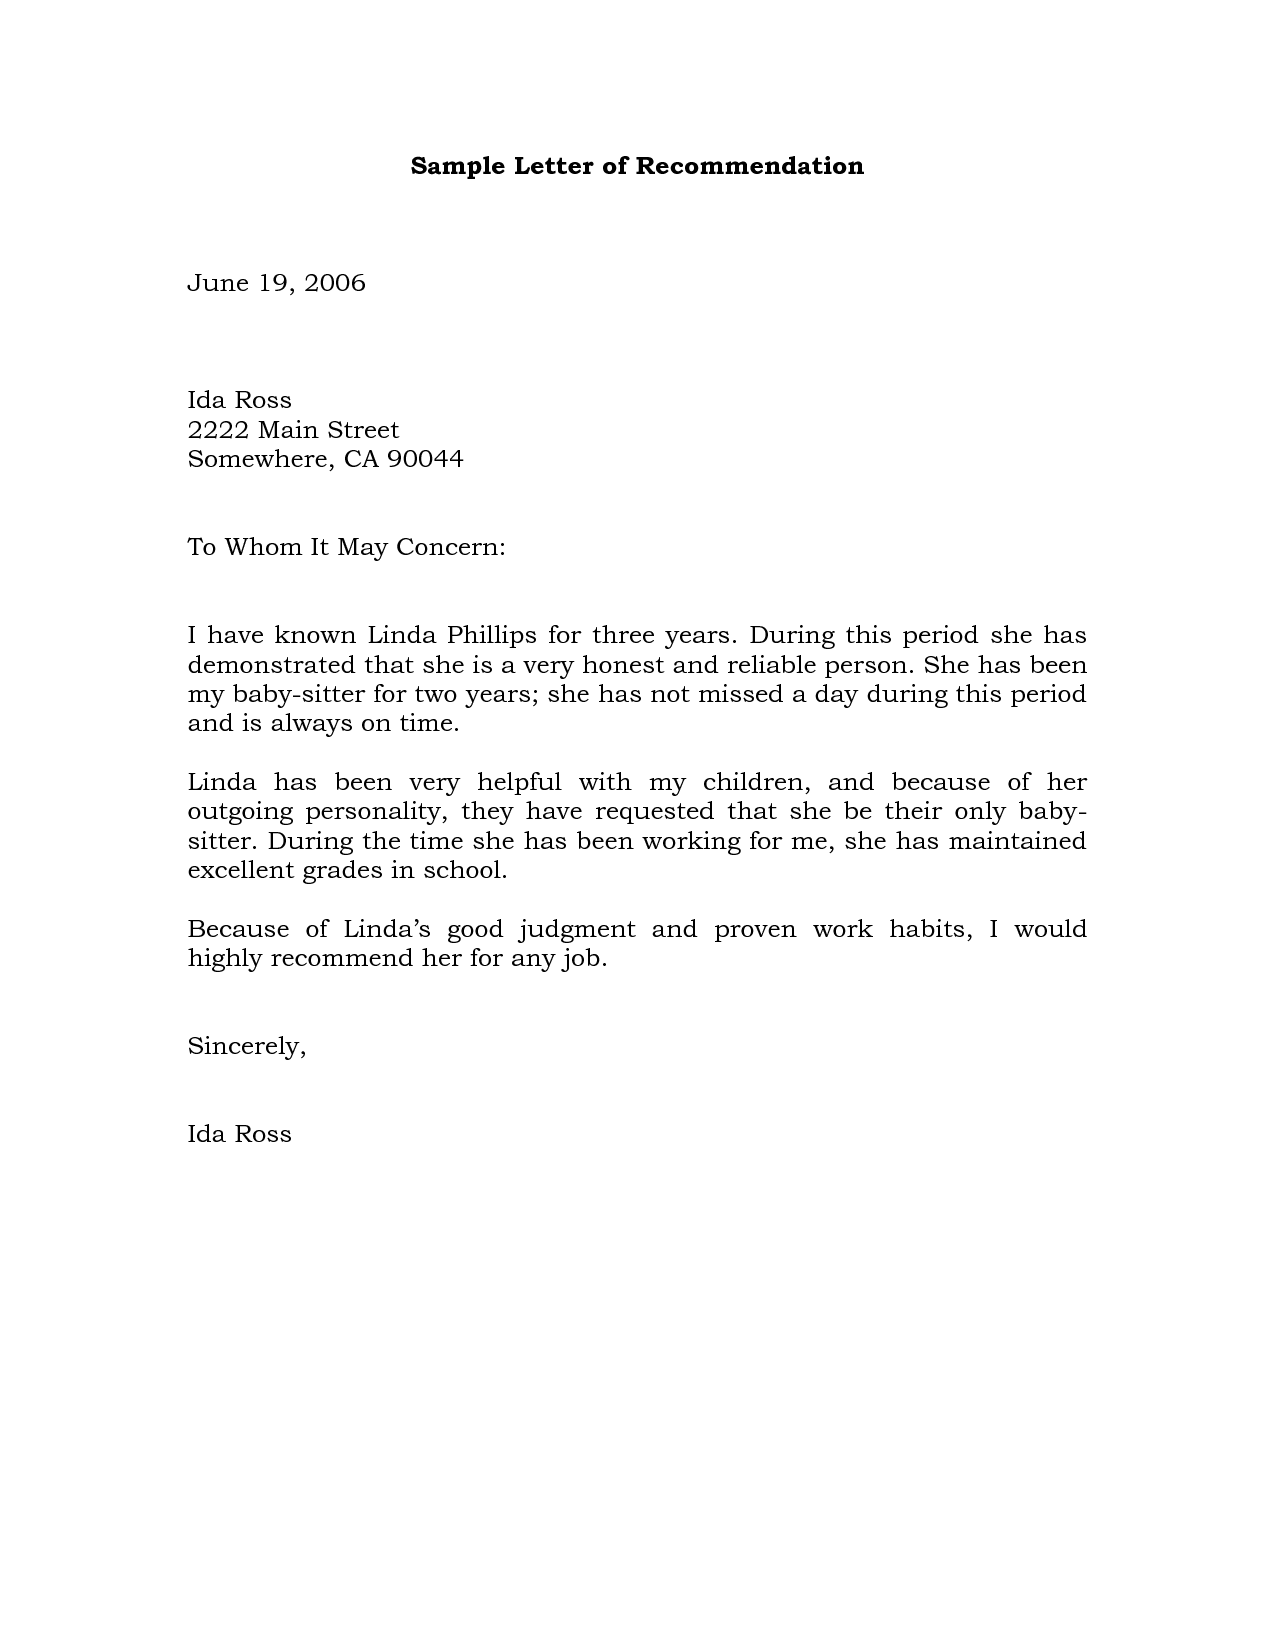 Sample Recommendation Letter Example  Free Sample Professional Letter Of Recommendation